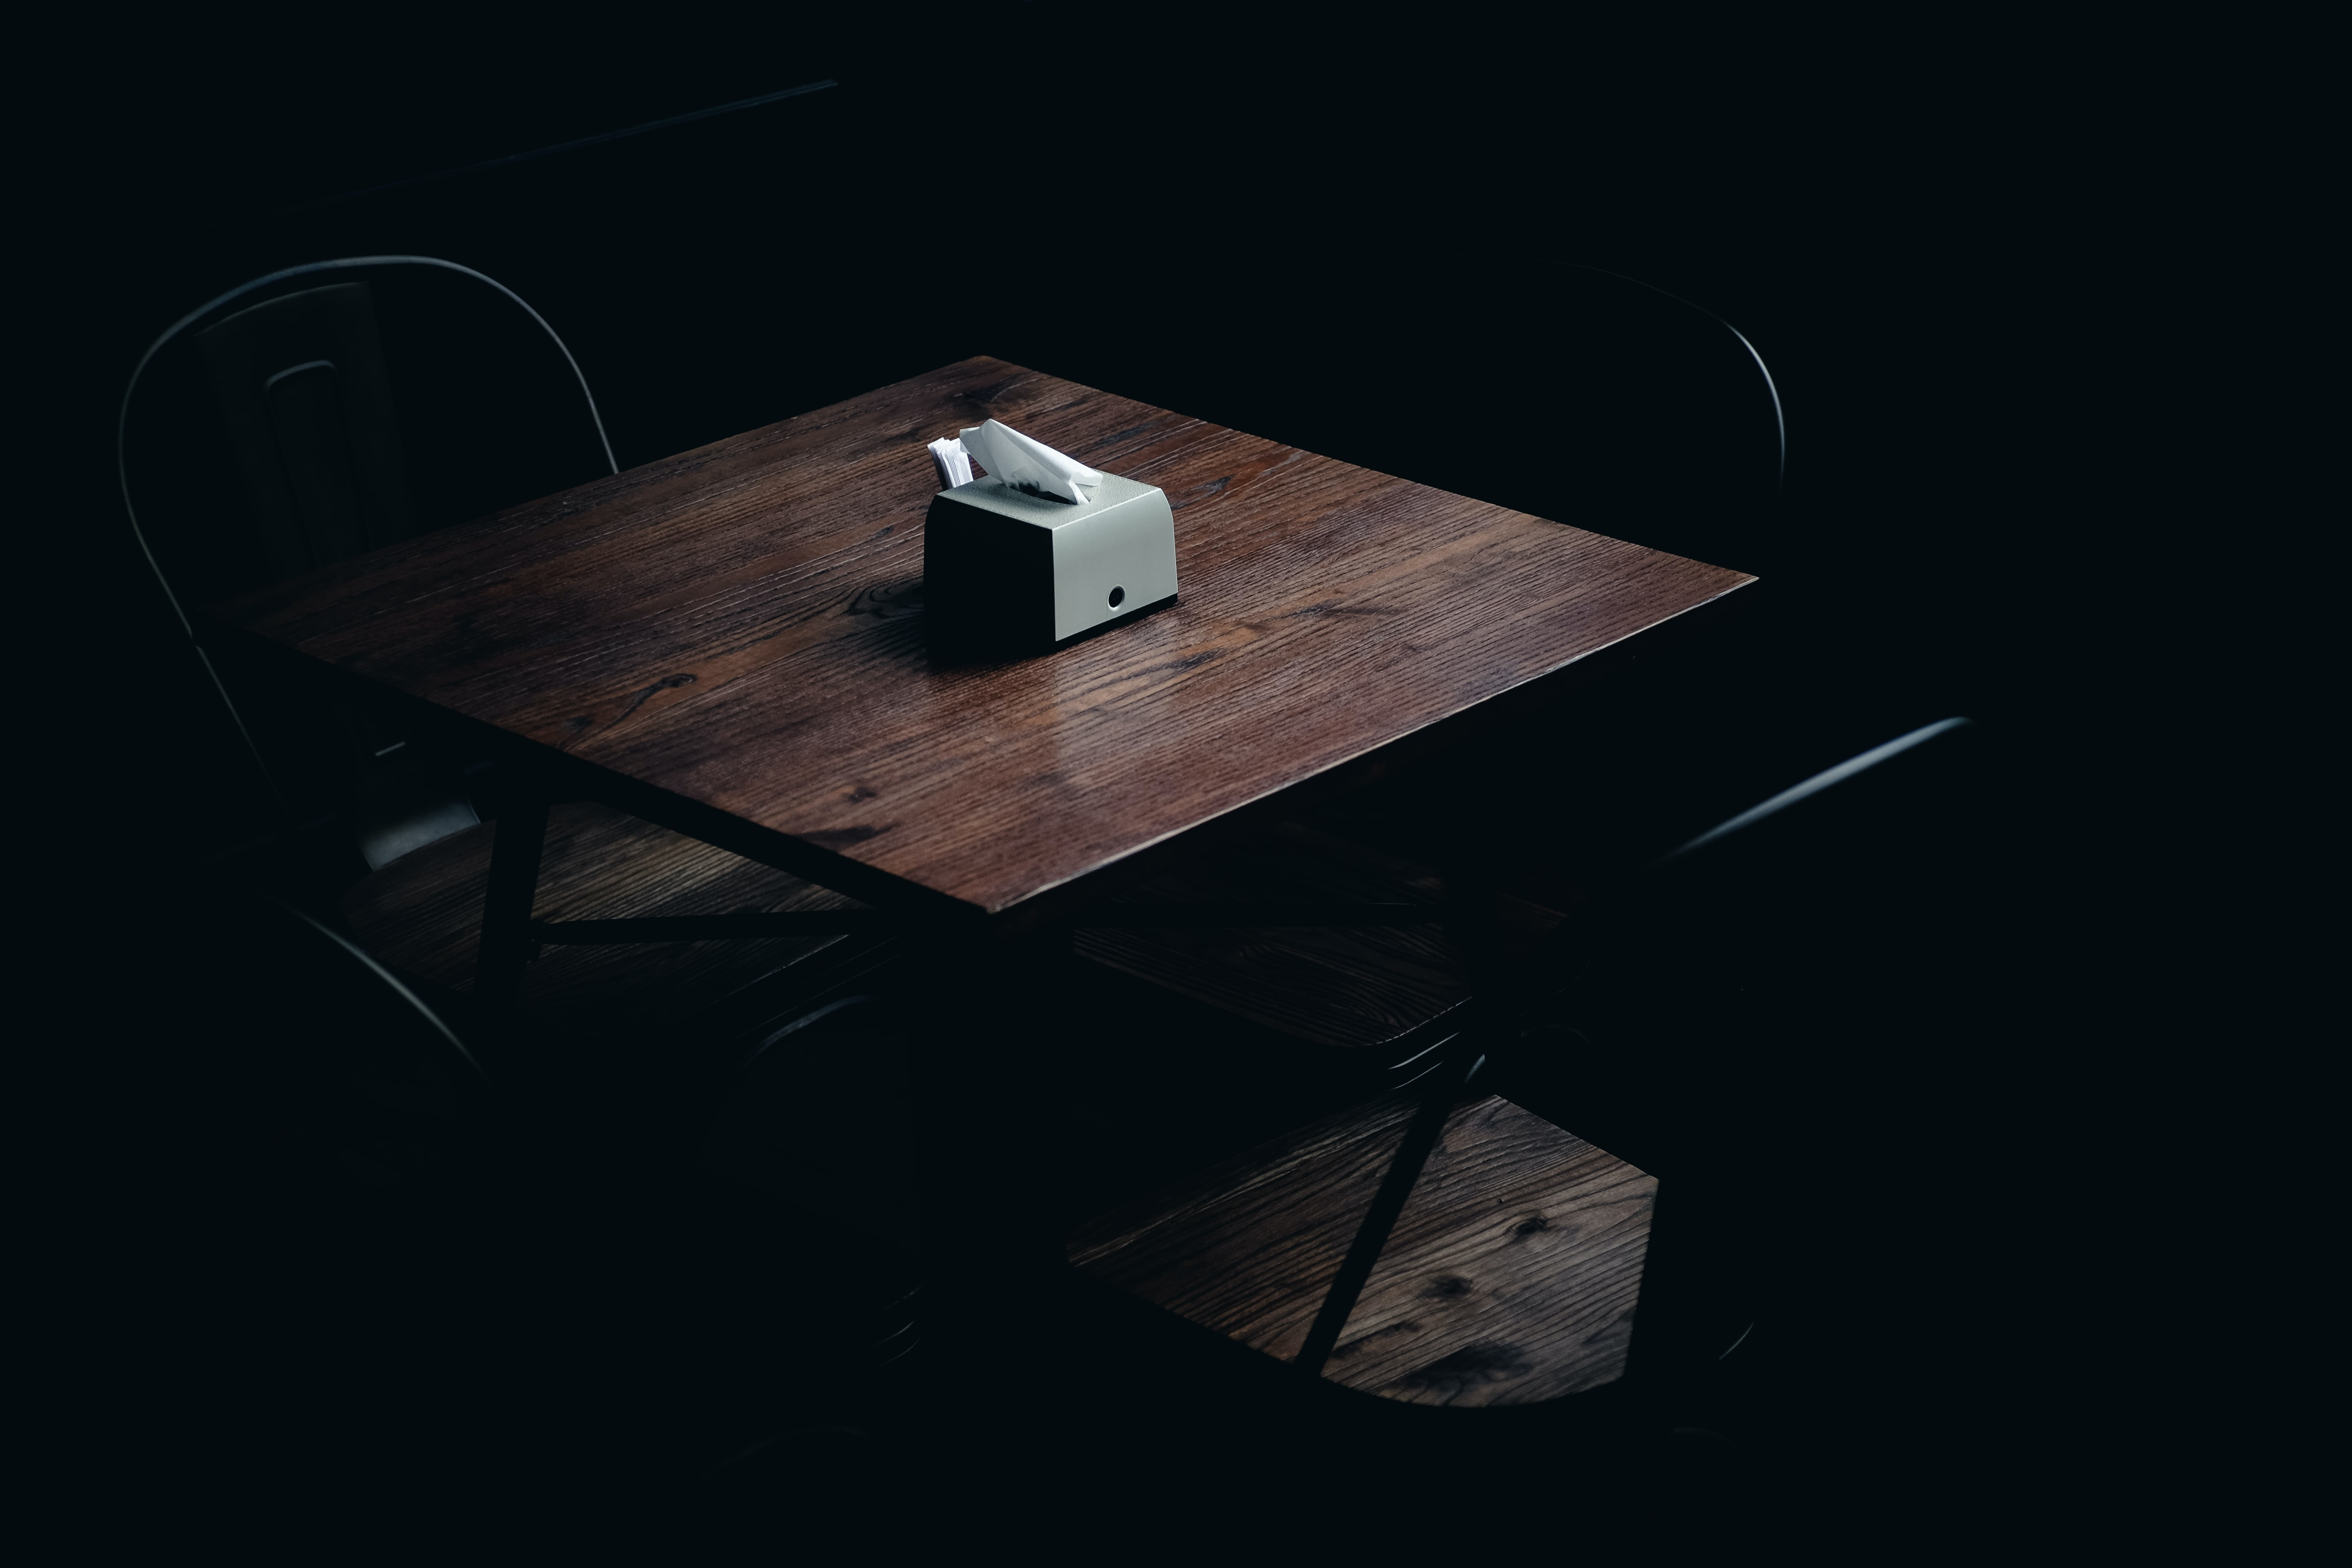 Dark wooden table and chairs in a dark room with napkin box on table